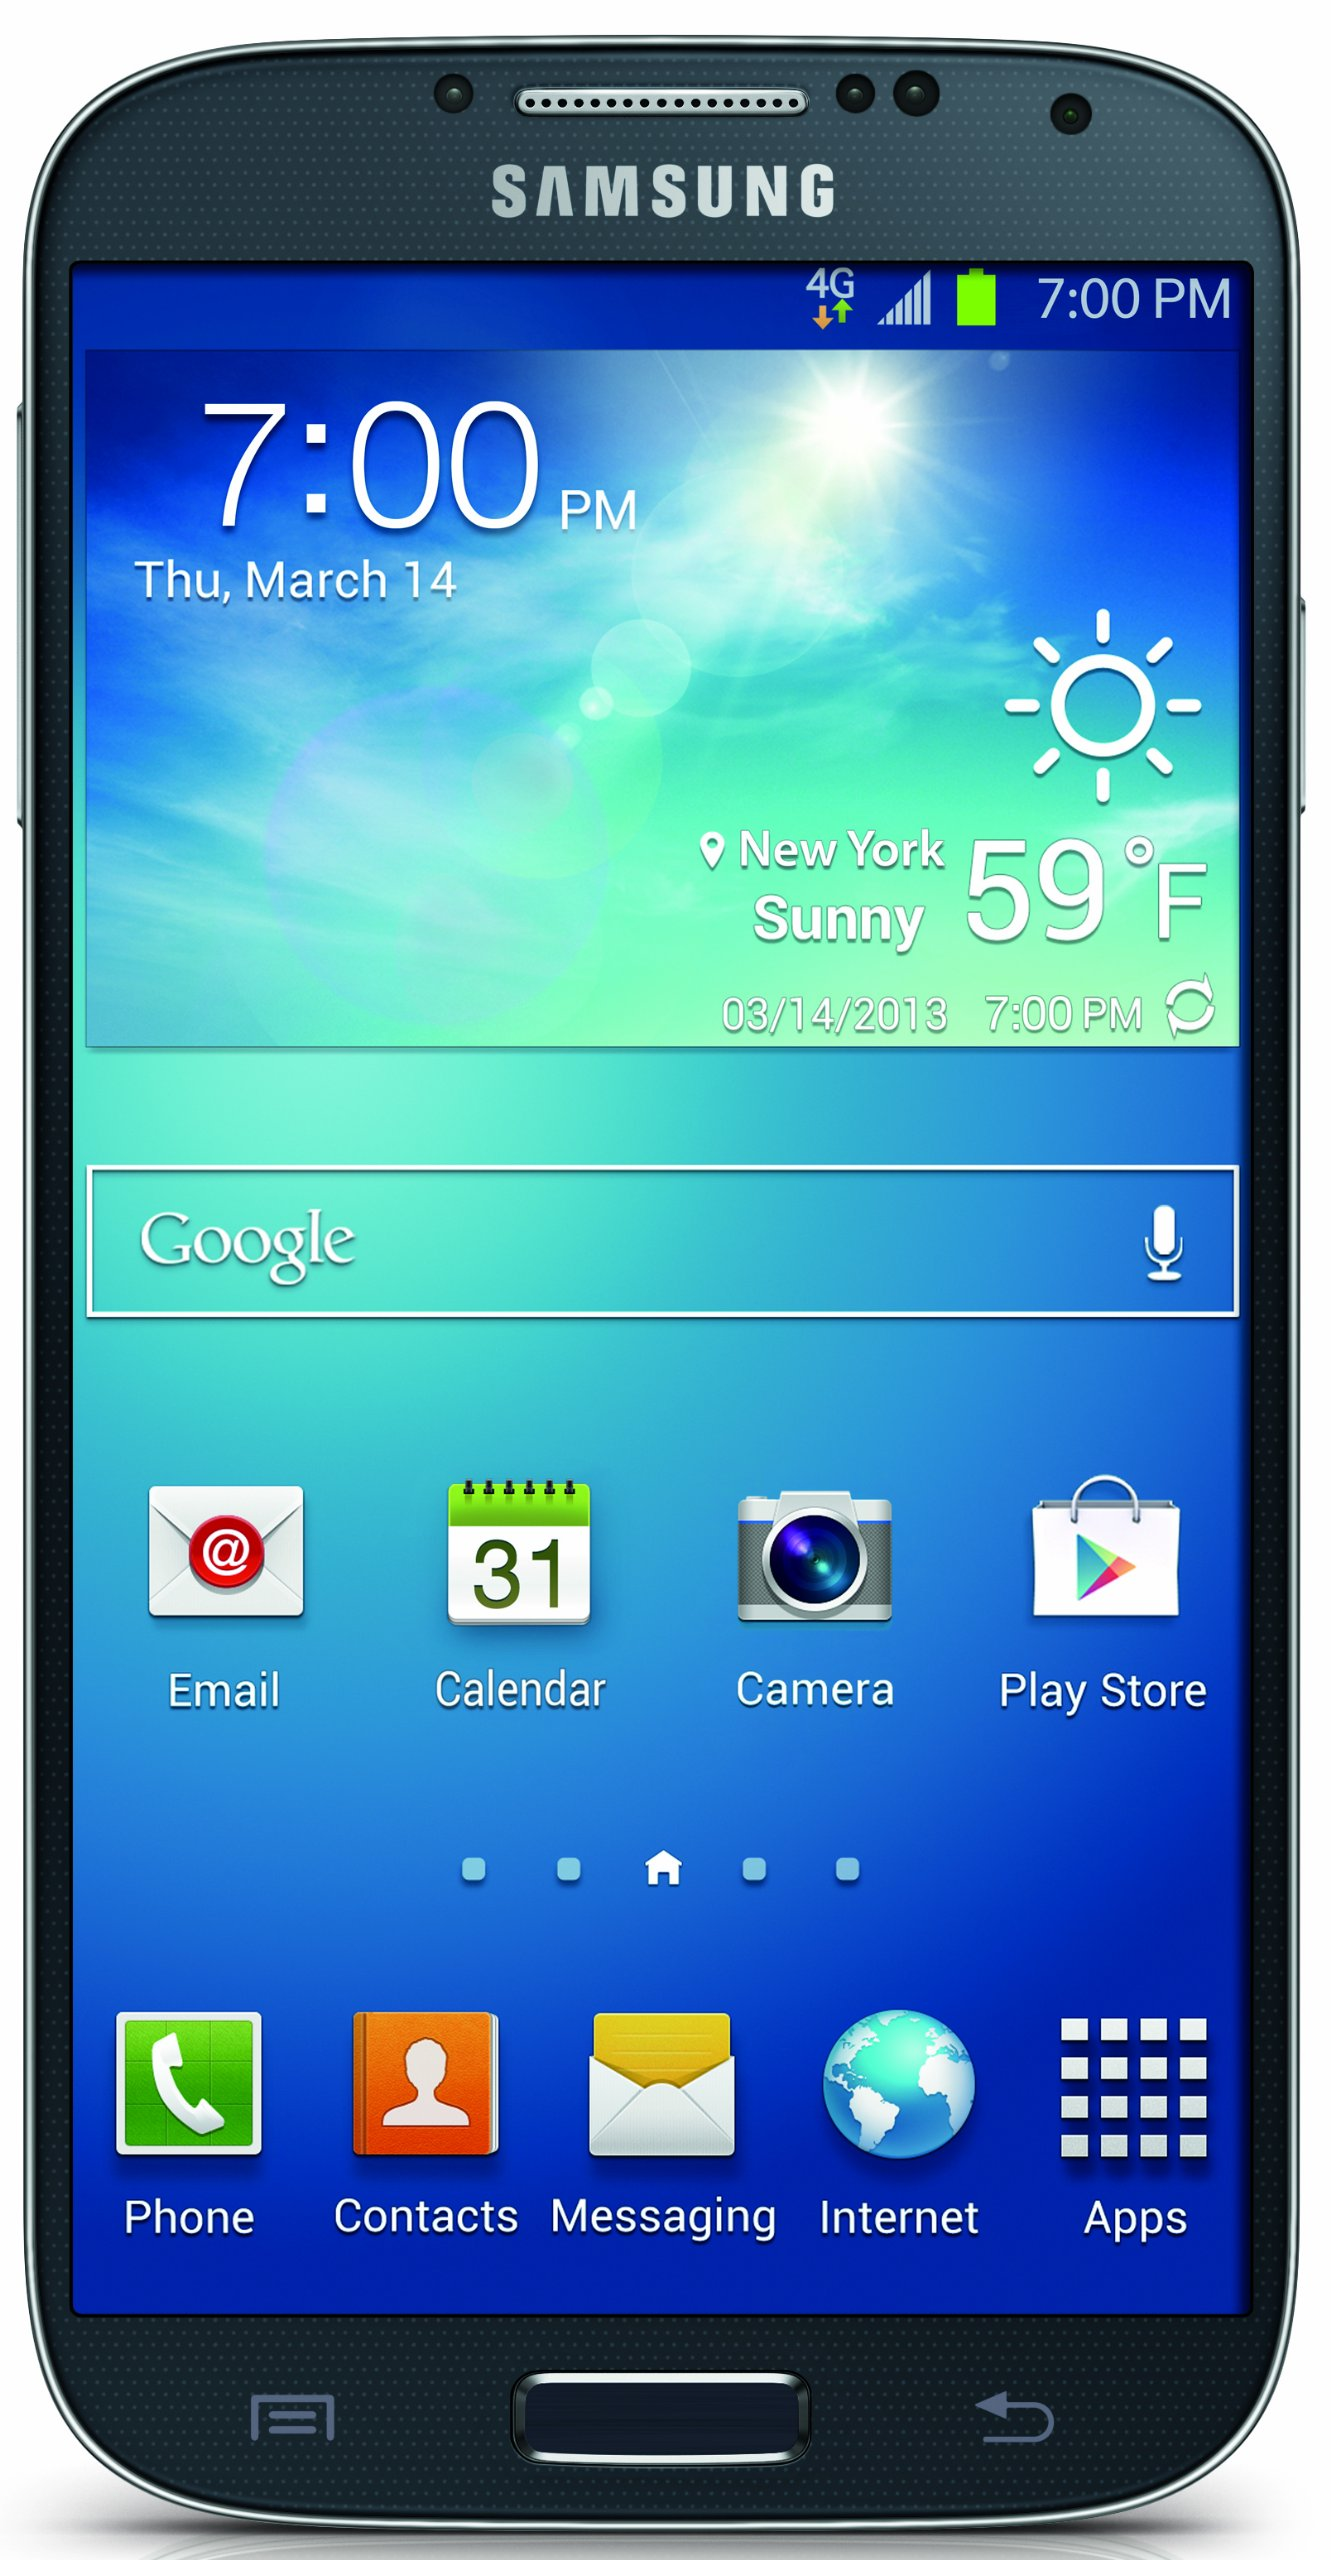 Samsung Galaxy S4, Black Mist 16GB (Sprint)